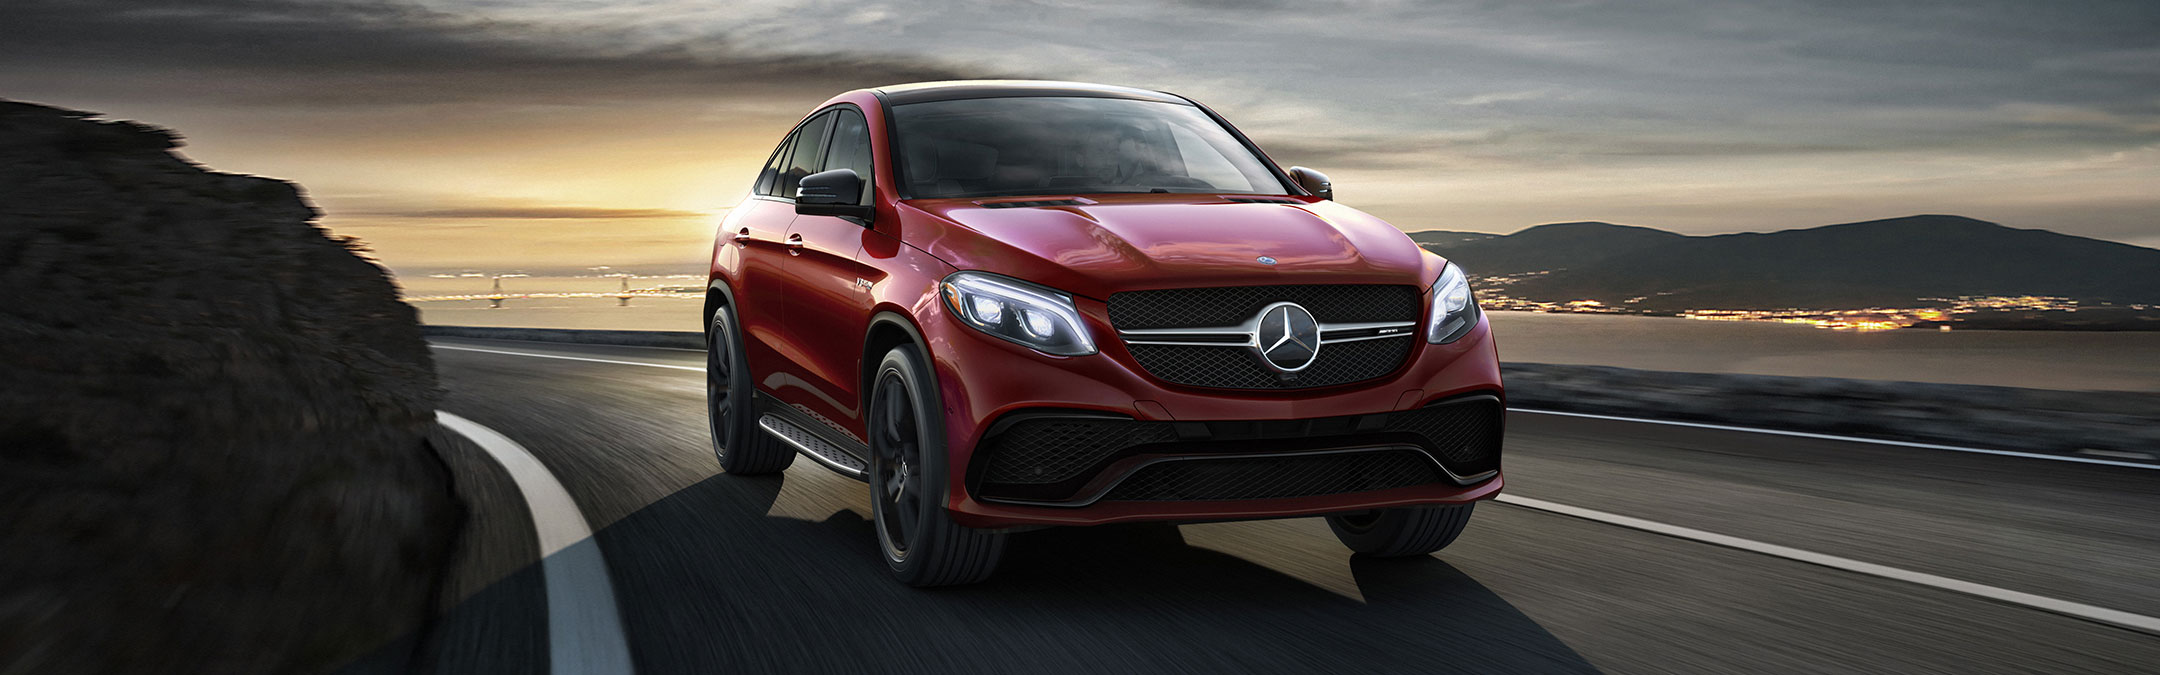 Mercedes-AMG GLE 4MATIC Coupe